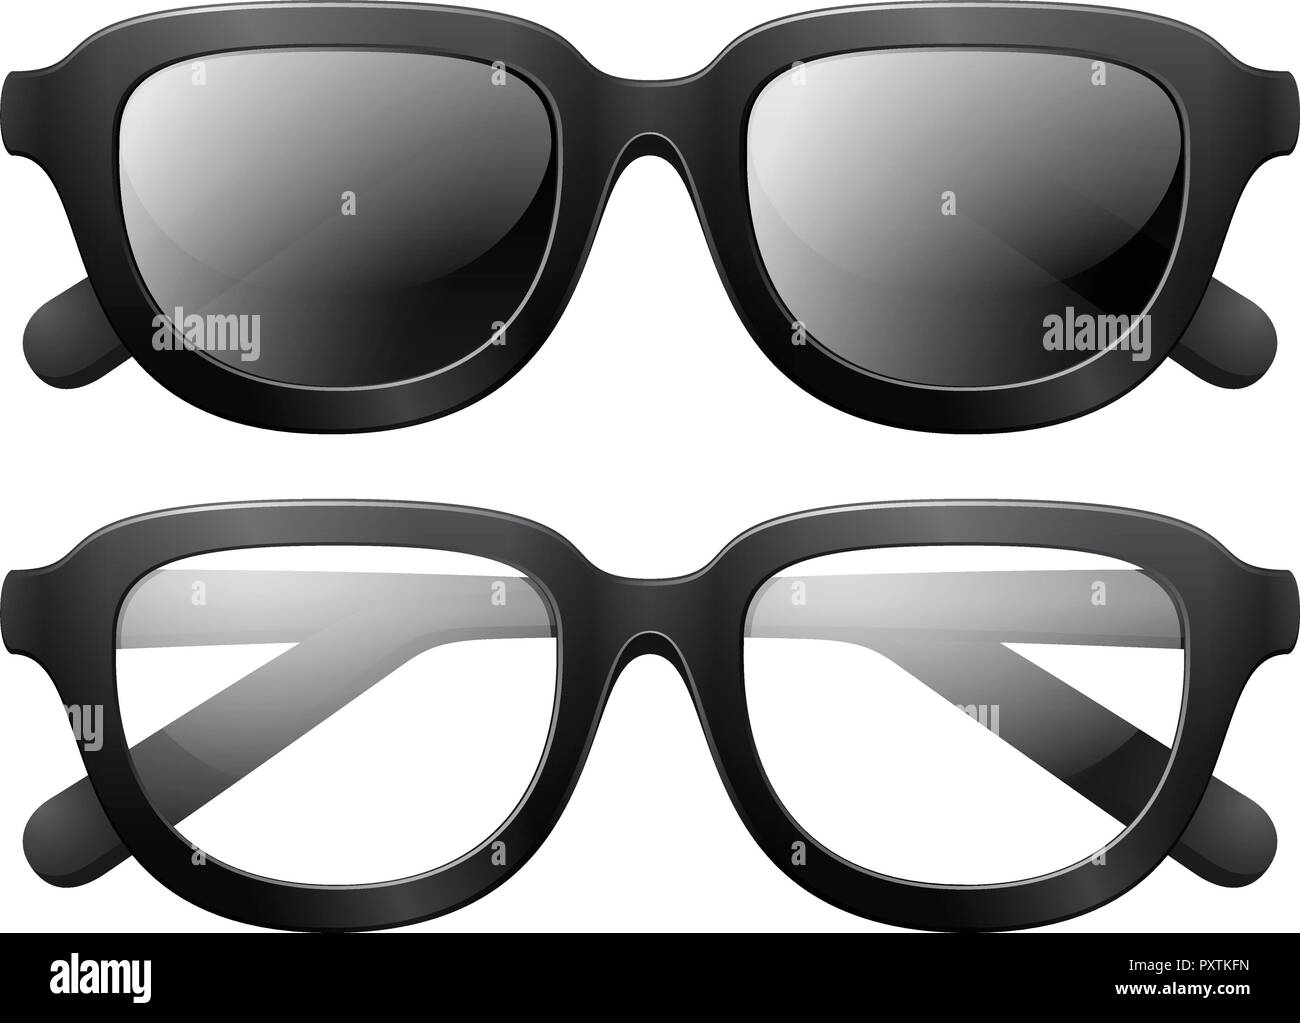 fbbc443a4e Eyeglasses and sunglasses with black frames illustration stock jpg  1300x1023 Glasses frames vector